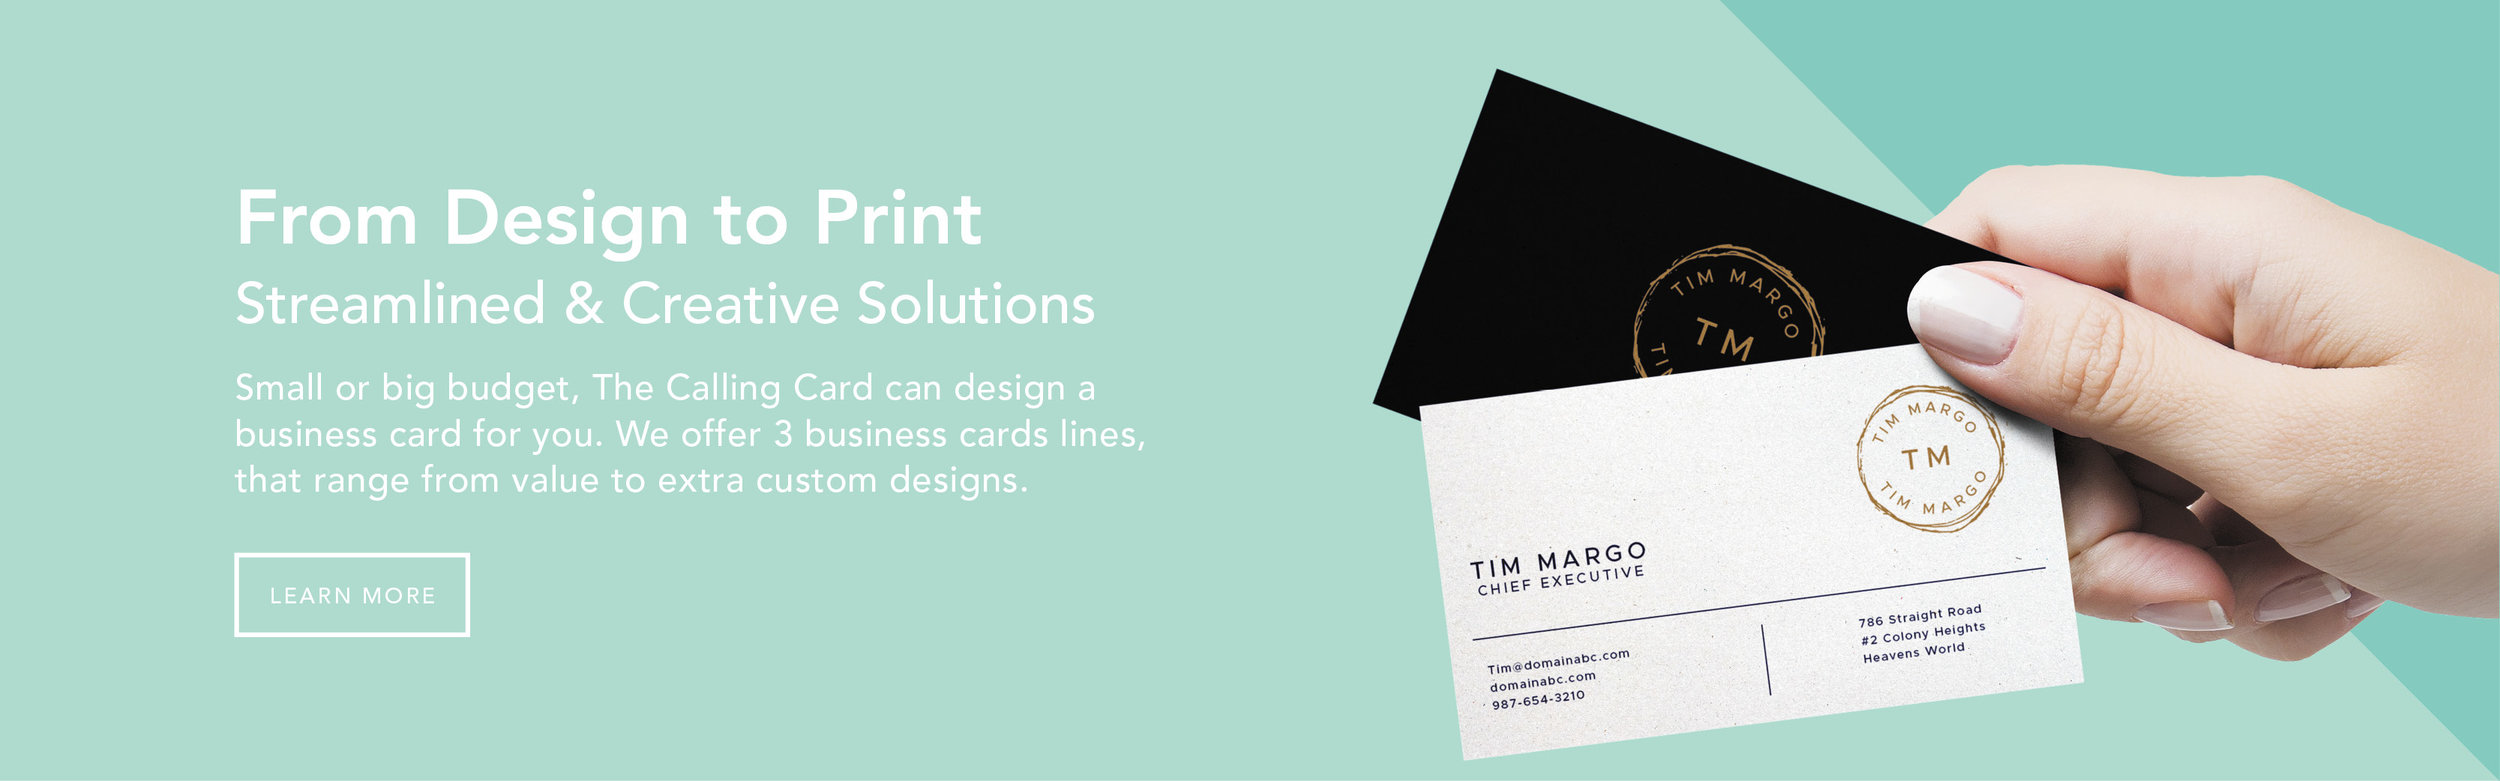 From Design to Print